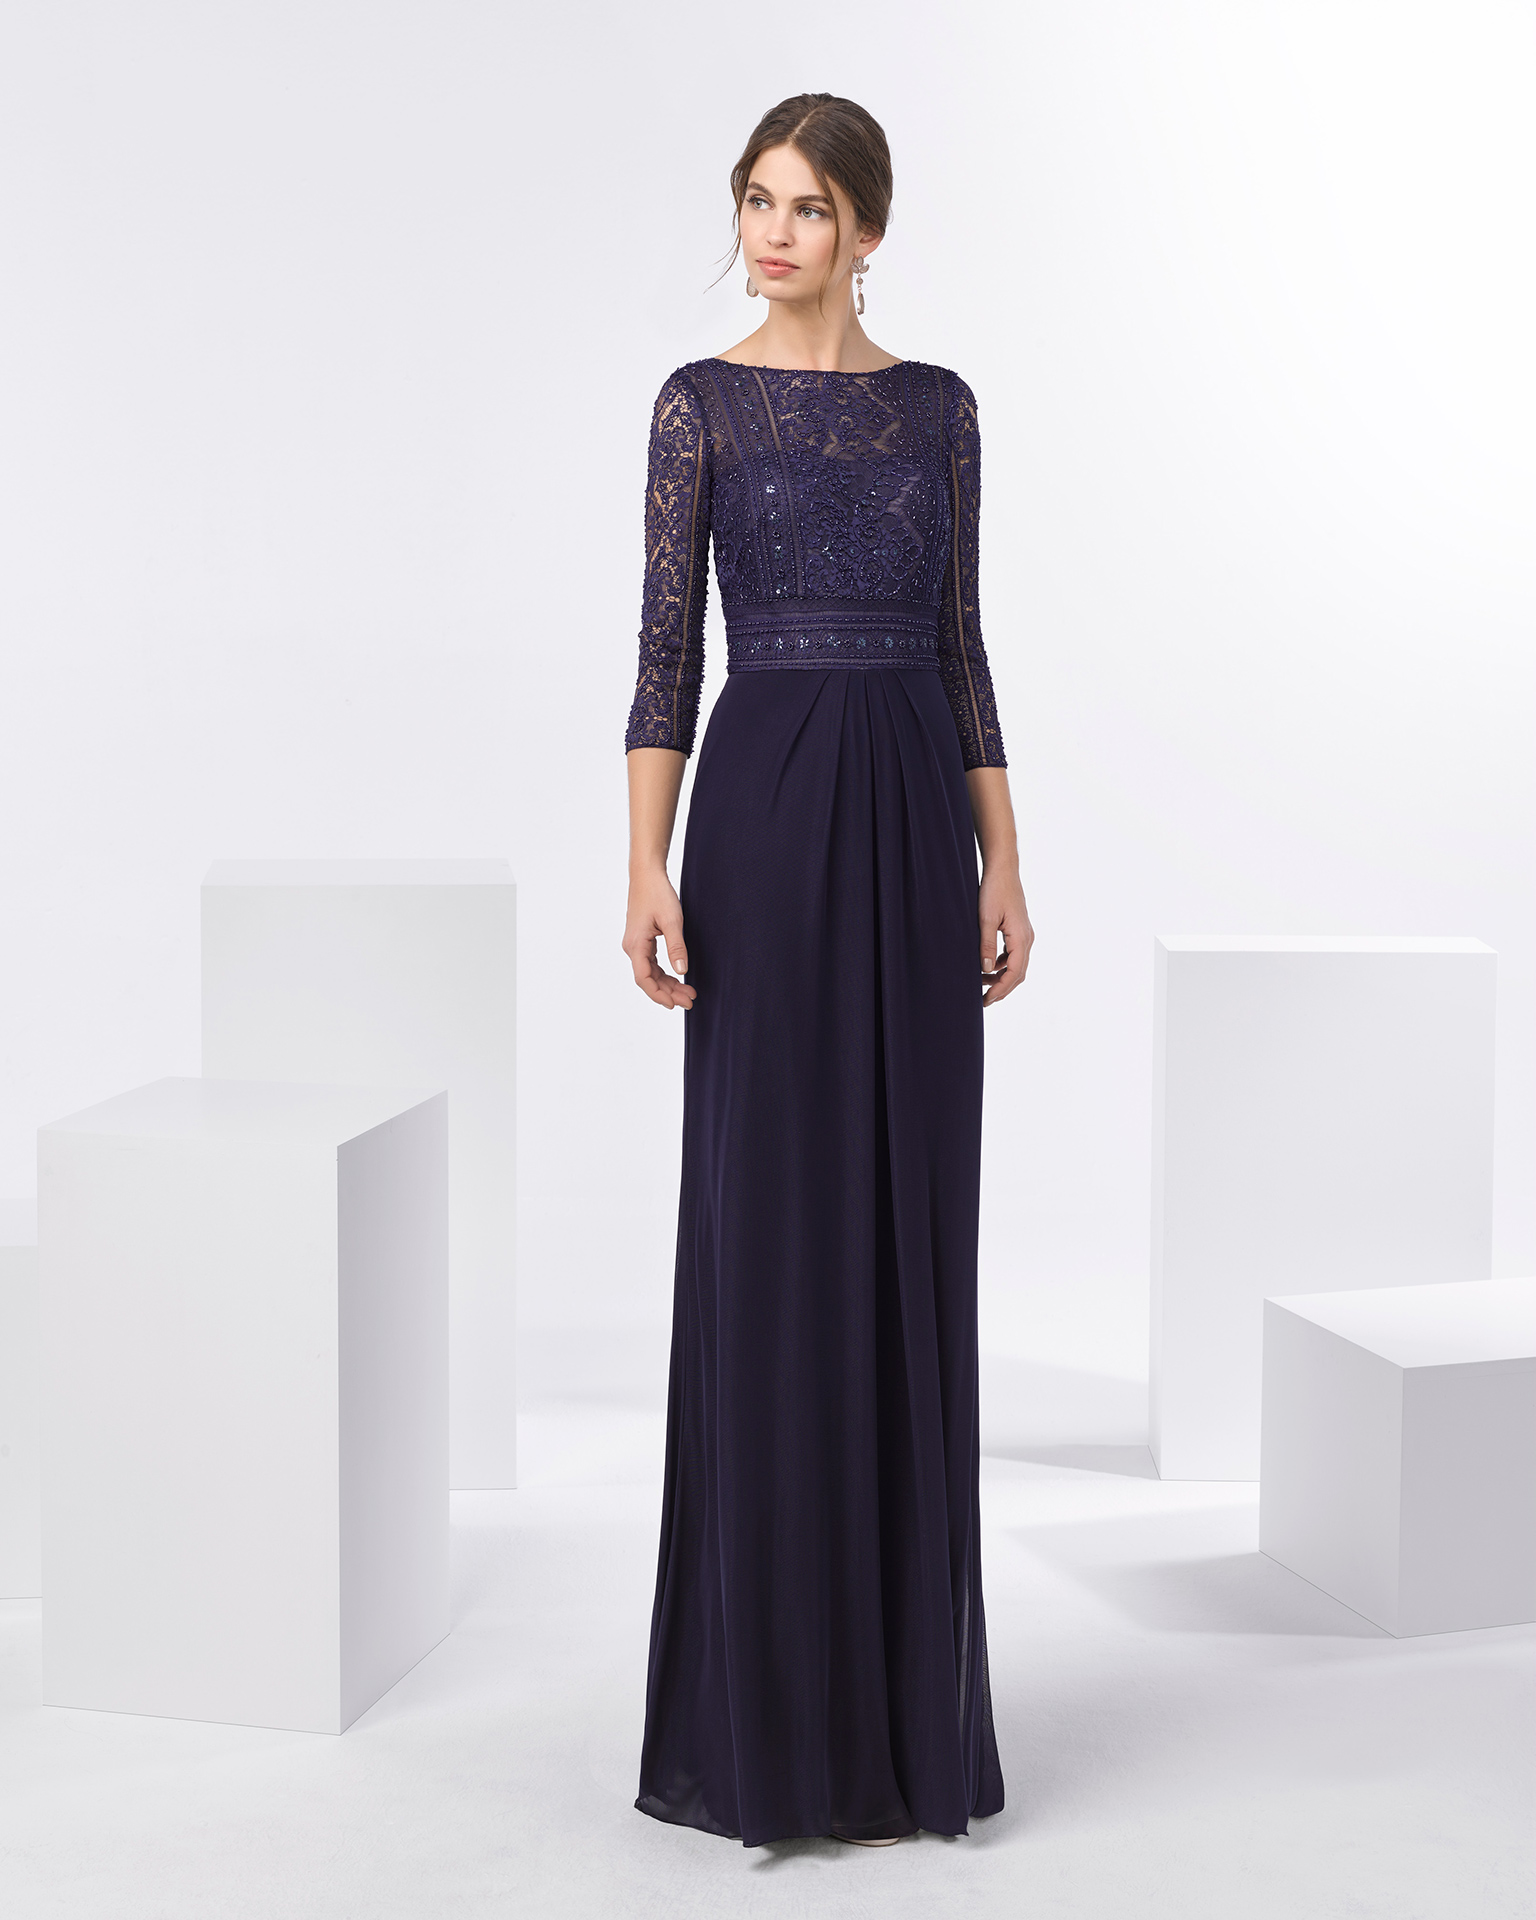 Long cocktail dress with beaded lace bodice, three-quarter sleeves and stretch tulle skirt. Available in smoke and navy blue/nude. 2018 FIESTA AIRE BARCELONA Collection.